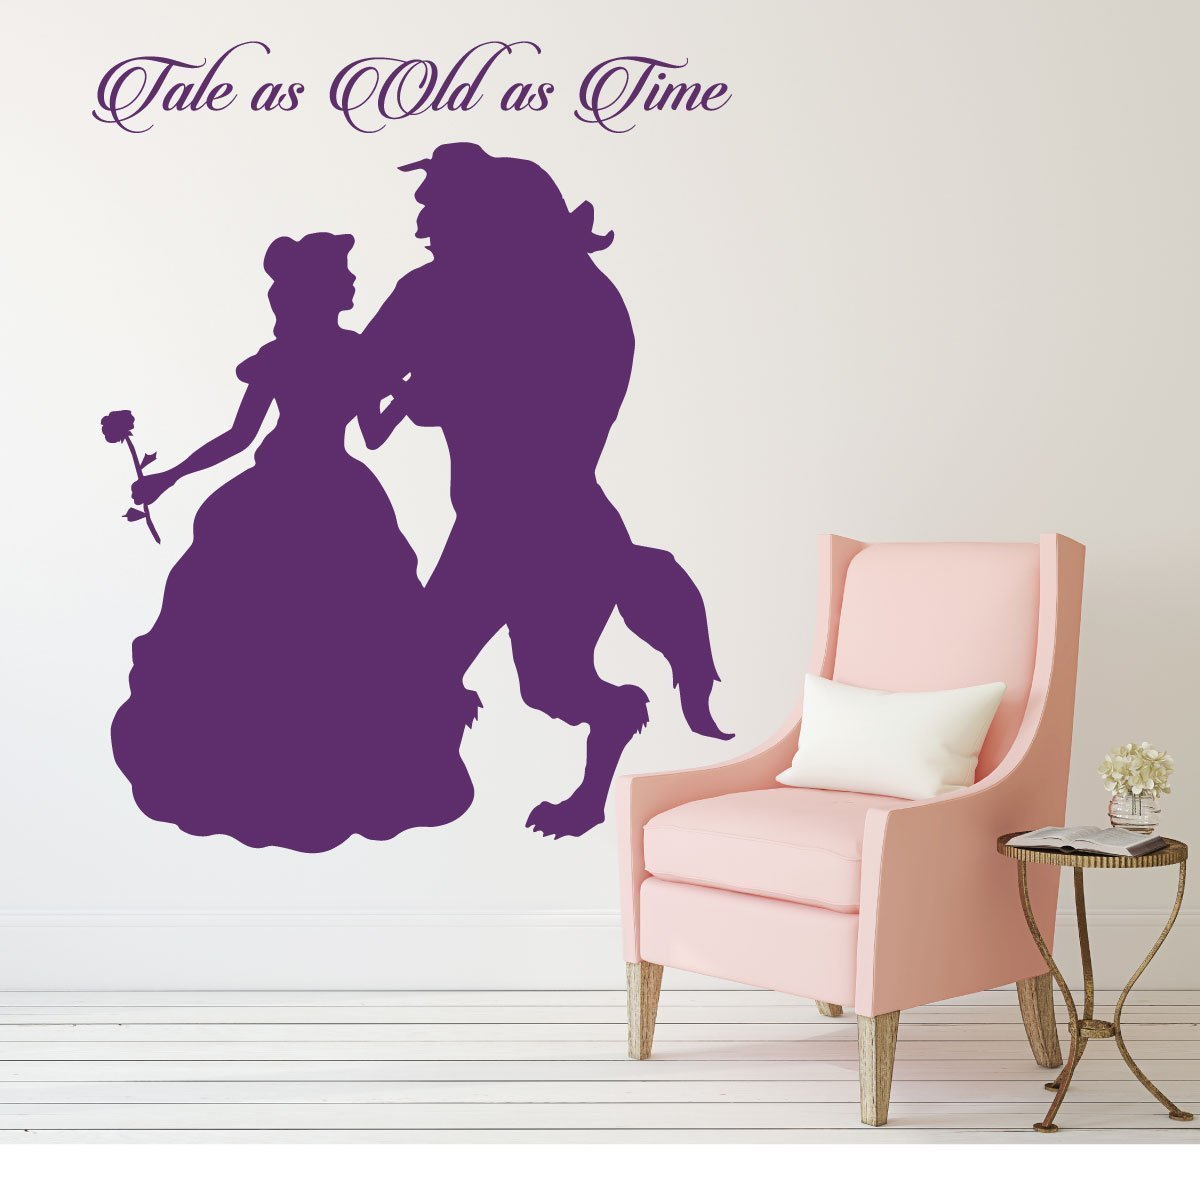 Disney Princess Belle Wall Decal - Beauty and the Beast Theme Decor - Tale As Old As Time